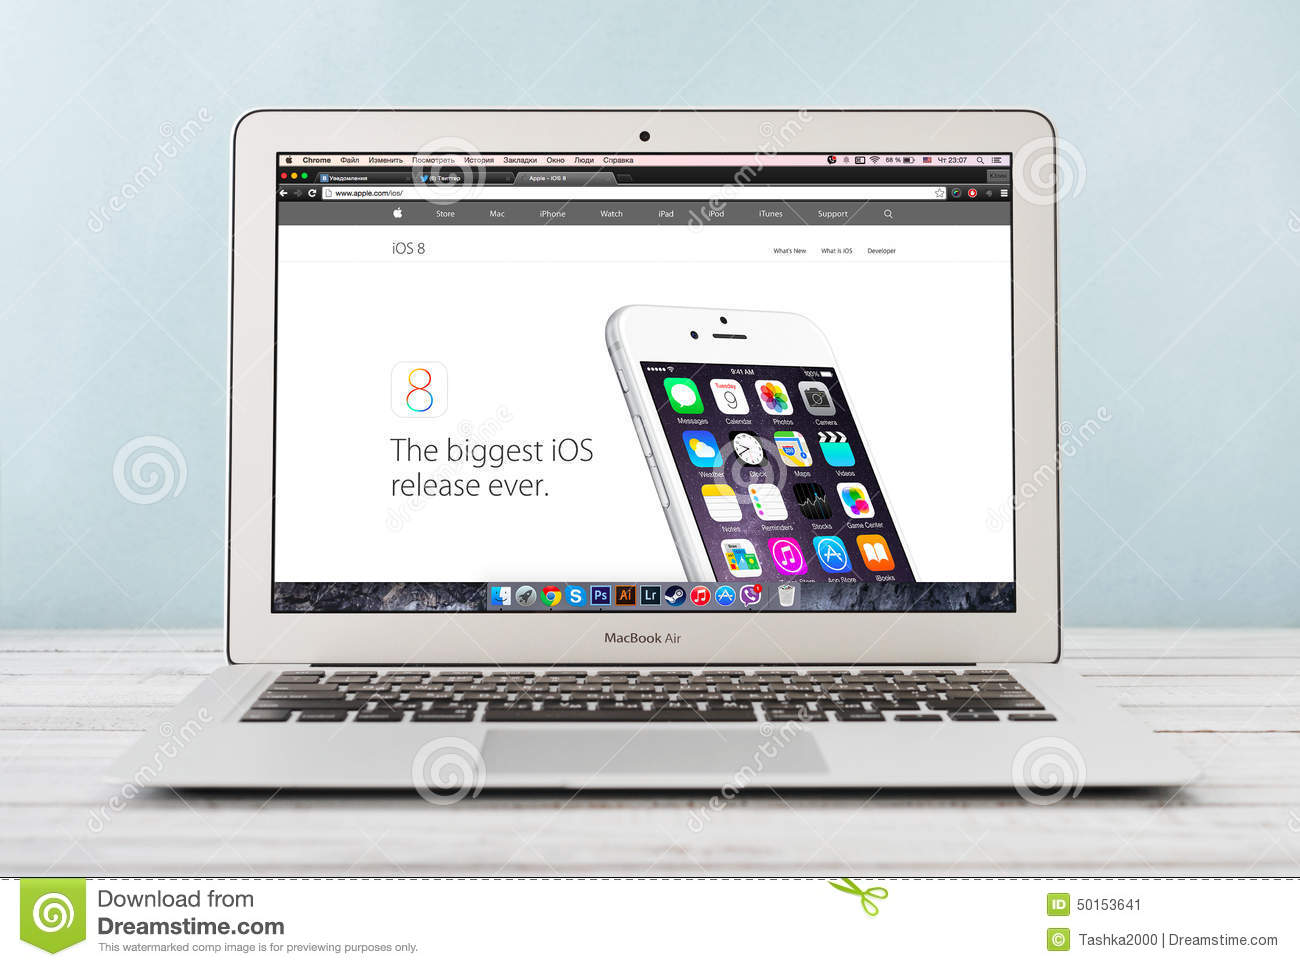 how to clean macbook screen at home